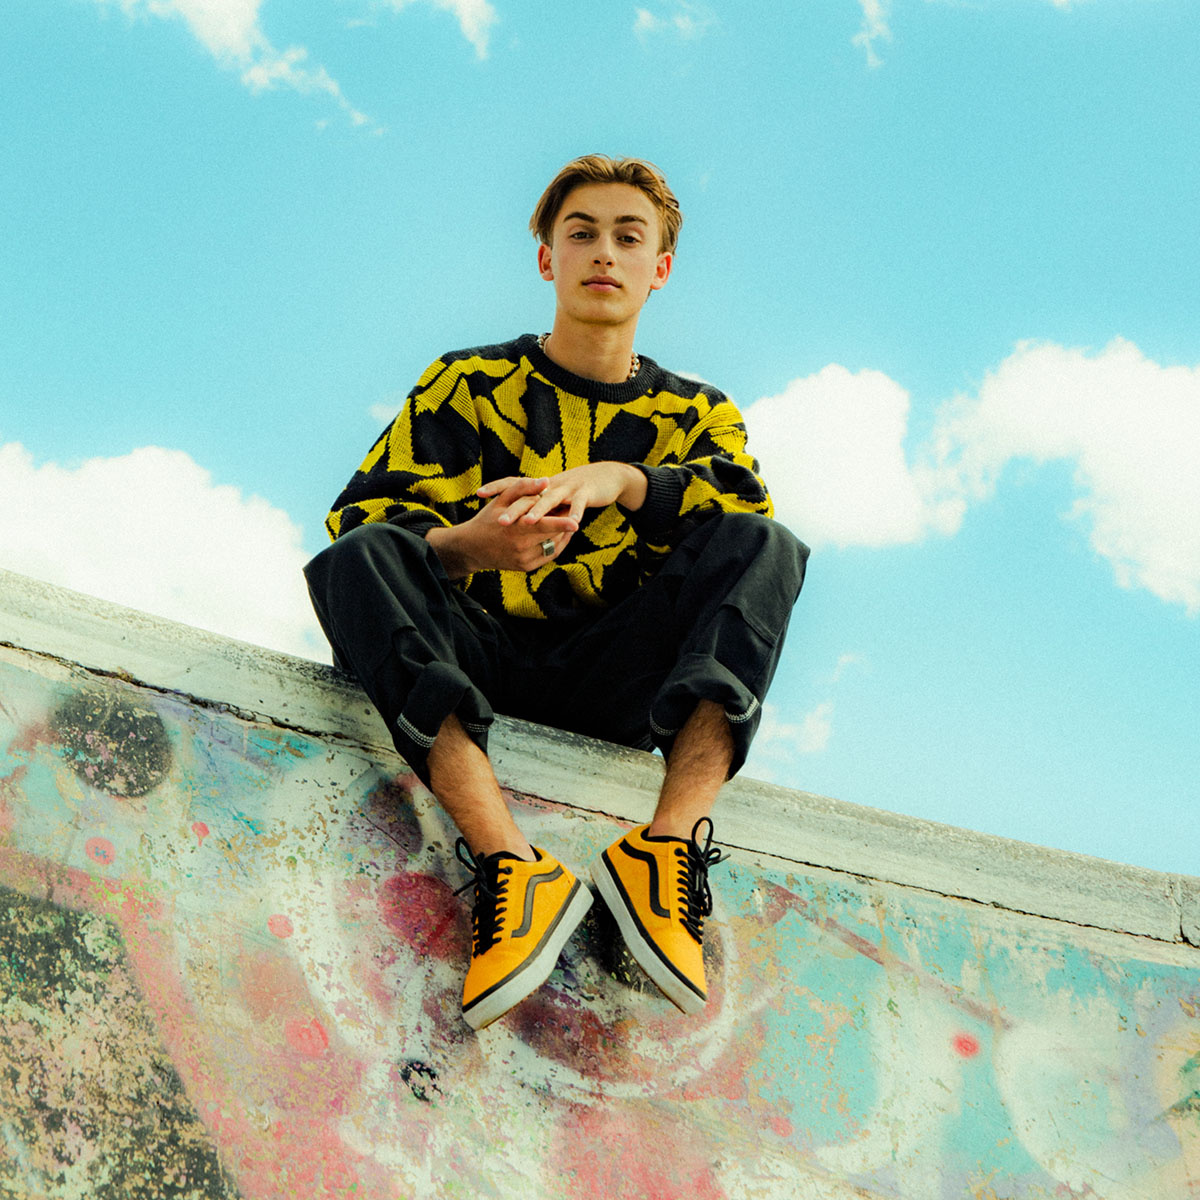 Johnny Orlando - Photo by Norman Wong